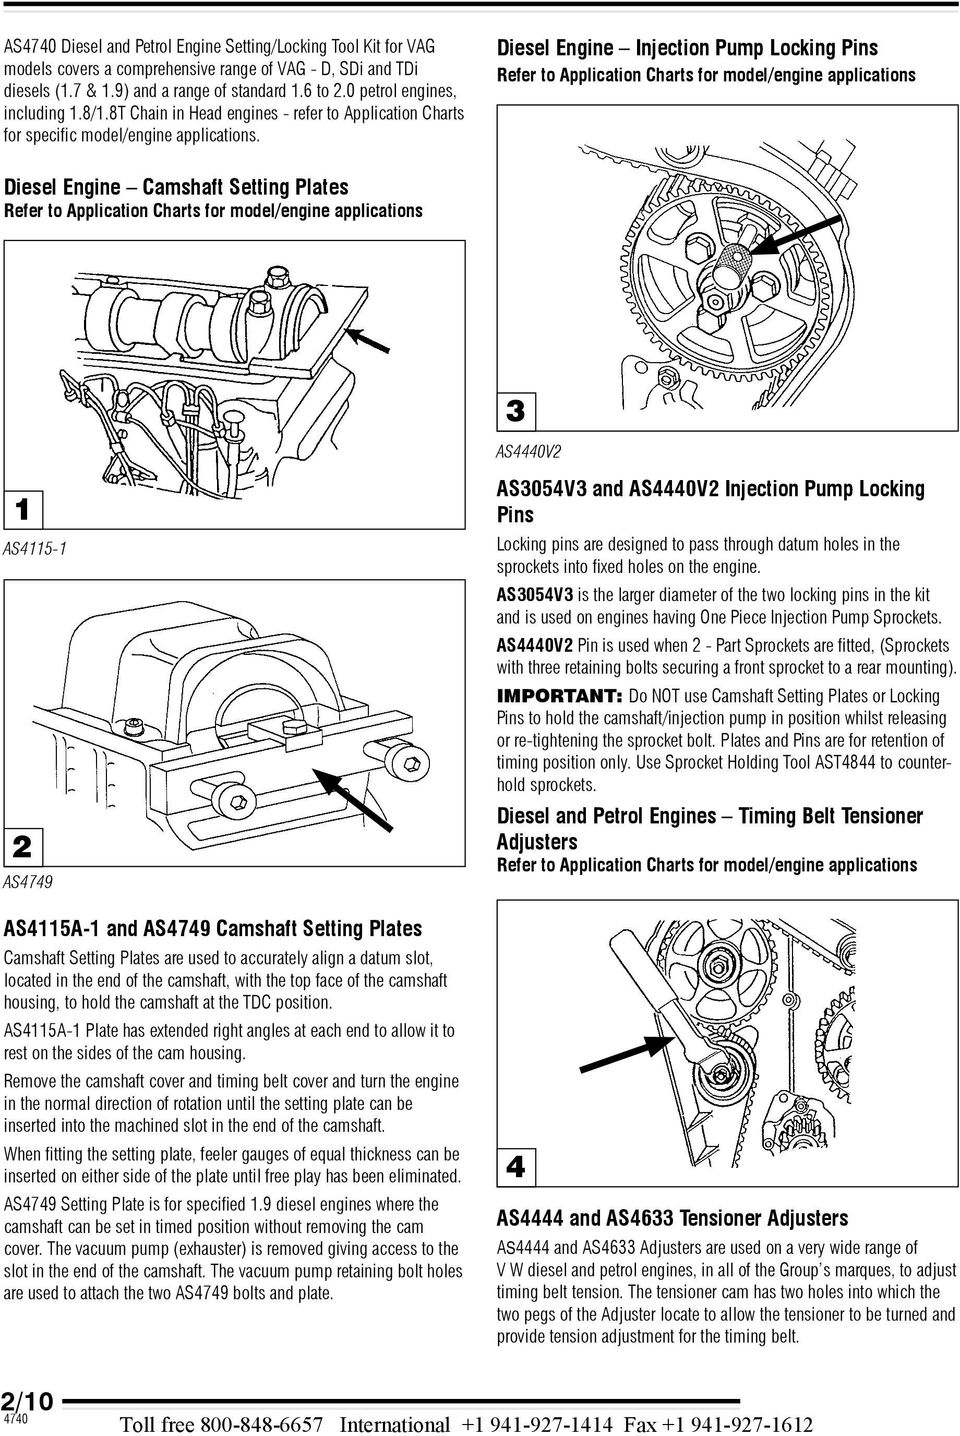 Diese Engine Injection Pump Locking Pins Refer to Appication Charts for  mode/engine appications Diese